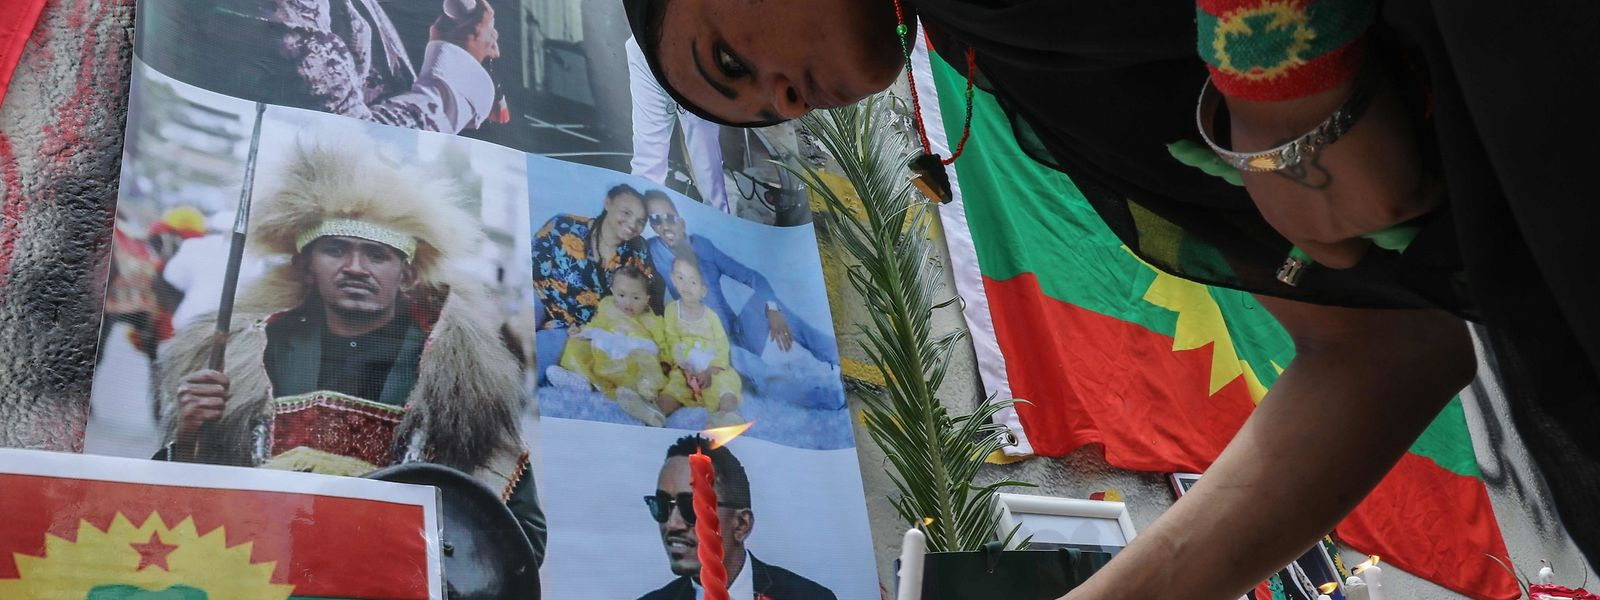 A member of the Oromo Ethiopian community in Lebanon lights a candle as she takes part in a demonstration to protest the death of musician and activist Hachalu Hundessa, in the capital Beirut on July 5, 2020. - Hundessa was shot and killed in the Ethiopian capital Addis Ababa on June 29, 2020. His death has sparked ongoing protests around the world. (Photo by ANWAR AMRO / AFP)